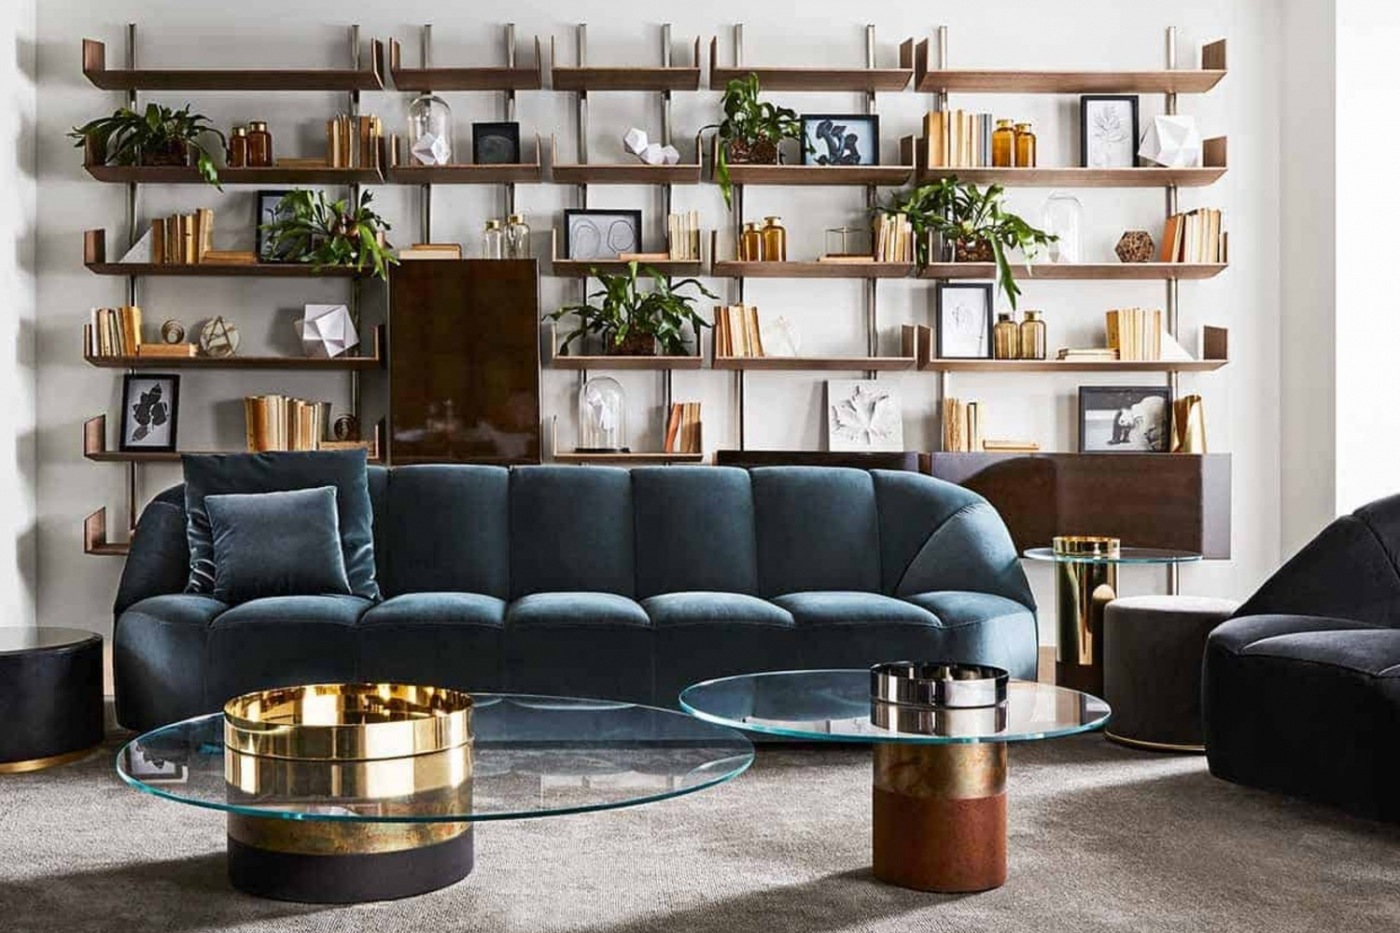 Where To Shop - The Best Luxury Showrooms In Dubai ft luxury showroom Where To Shop – The Best Luxury Showrooms In Dubai Where To Shop The Best Luxury Showrooms In Dubai ft 2 1400x933